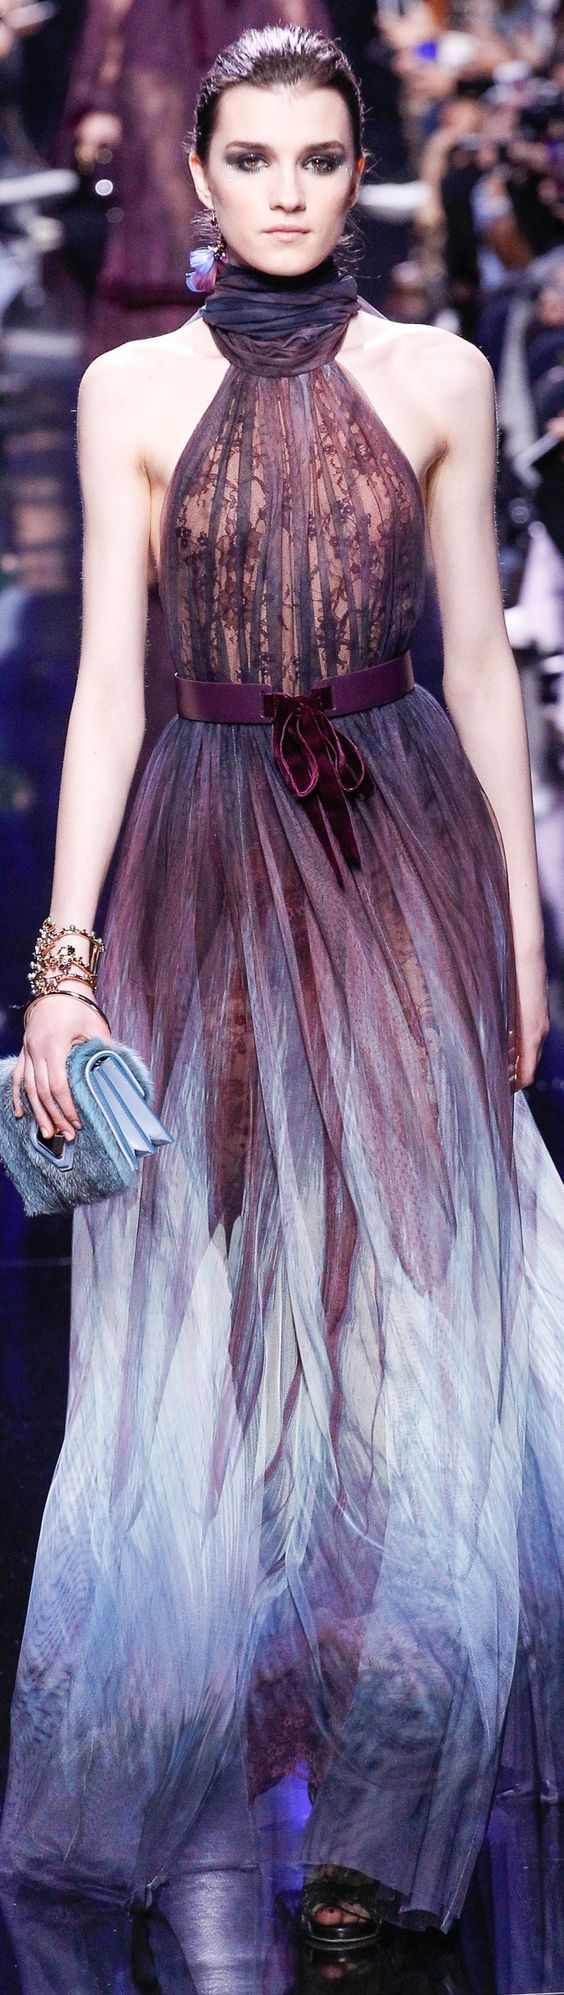 Elie Saab Fall 2017 RTW Purple and pale blue bridal haute couture  collection beautiful luxury high fashion white  minimalist silk wedding gown, wedding dress, long white skirt, modern minimalist avant garde,  long white fairytale style wedding skirts for classy romantic wedding queens. Fashion model runway full body portrait photo, neckline simple clean satin skirt, for wedding inspiration ideas